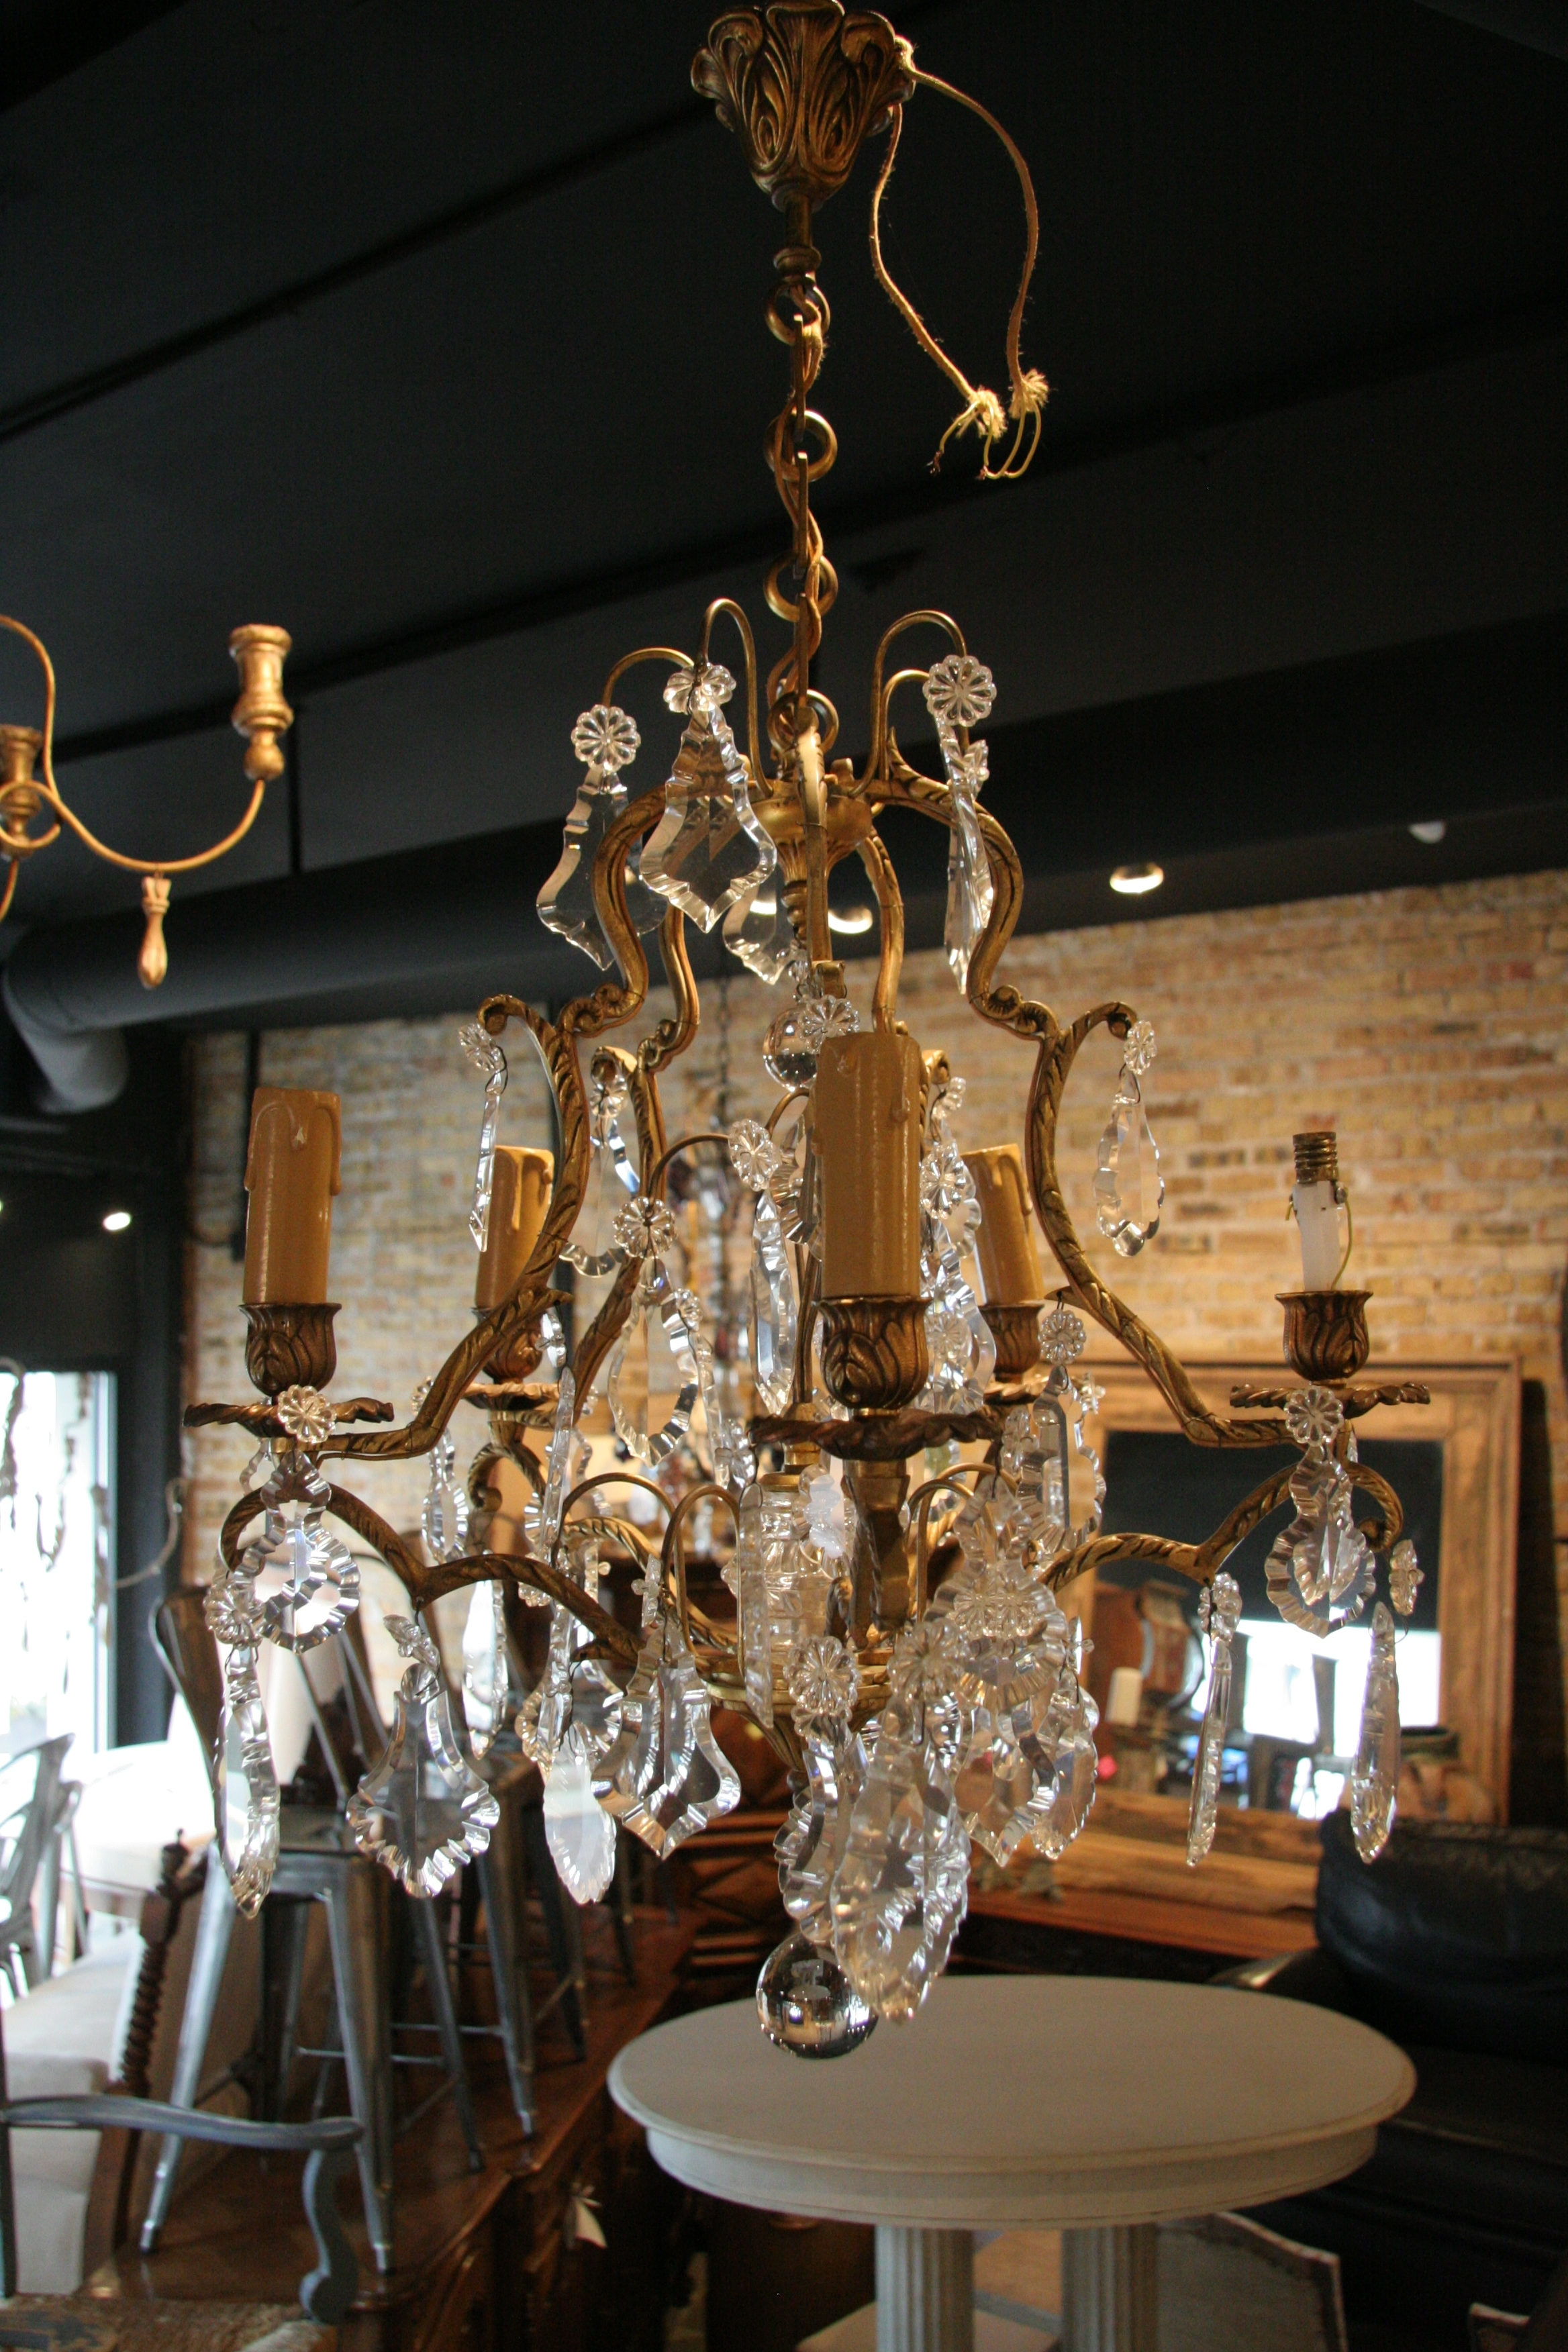 Brass And Crystal Chandeliers Regarding Most Current Antique French 5 Light Brass And Crystal Chandelier – Sold – (View 8 of 20)